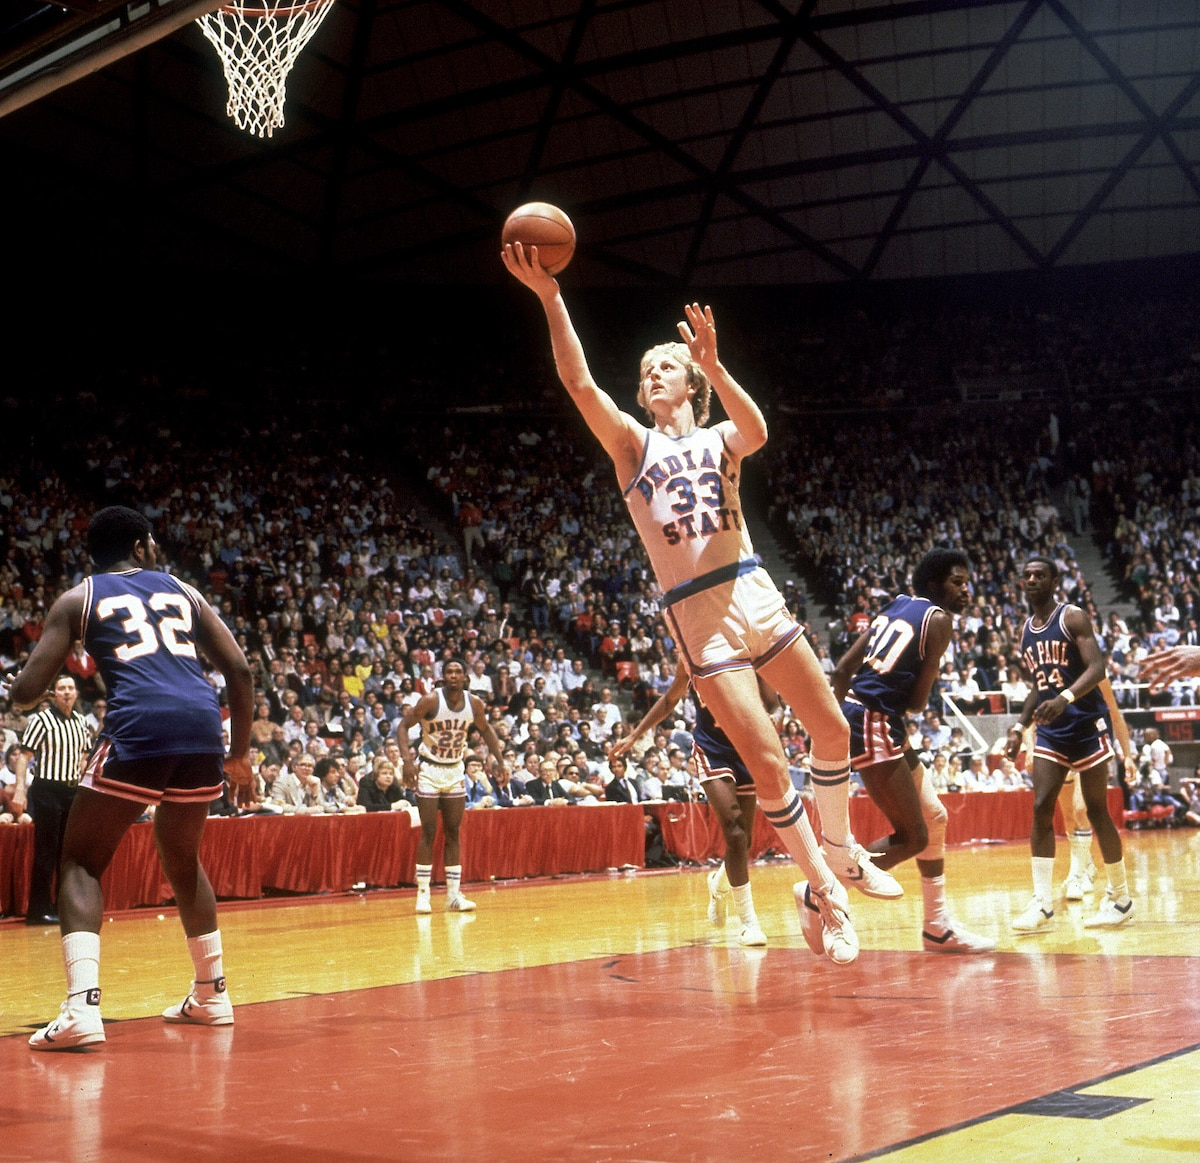 Larry Bird in the 1979 Final Four.